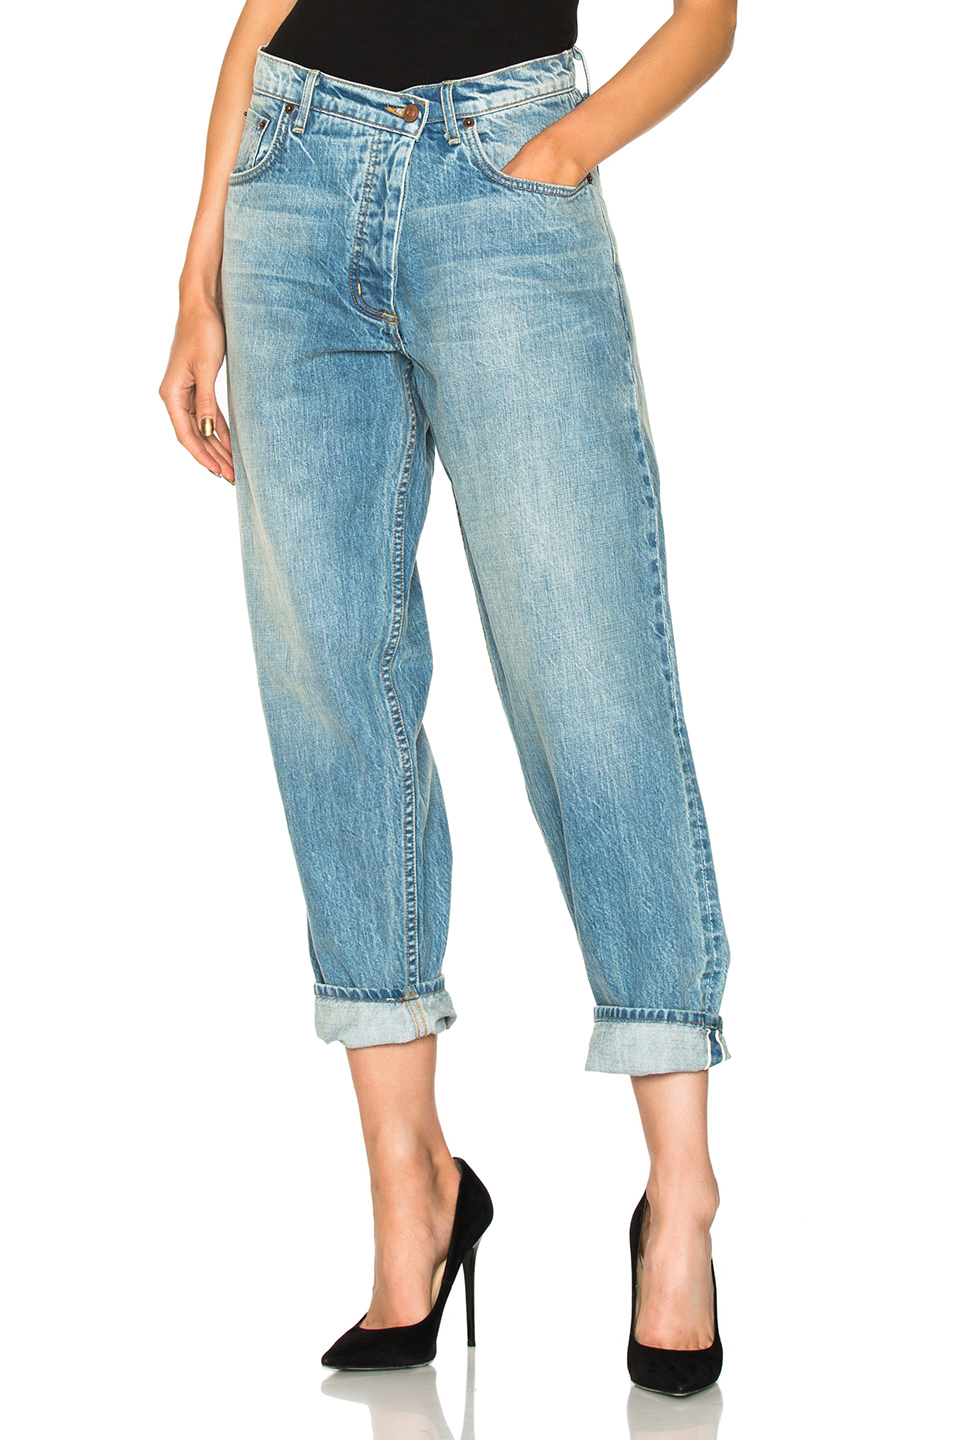 Get the jeans for $790 at fwrd.com - Wheretoget